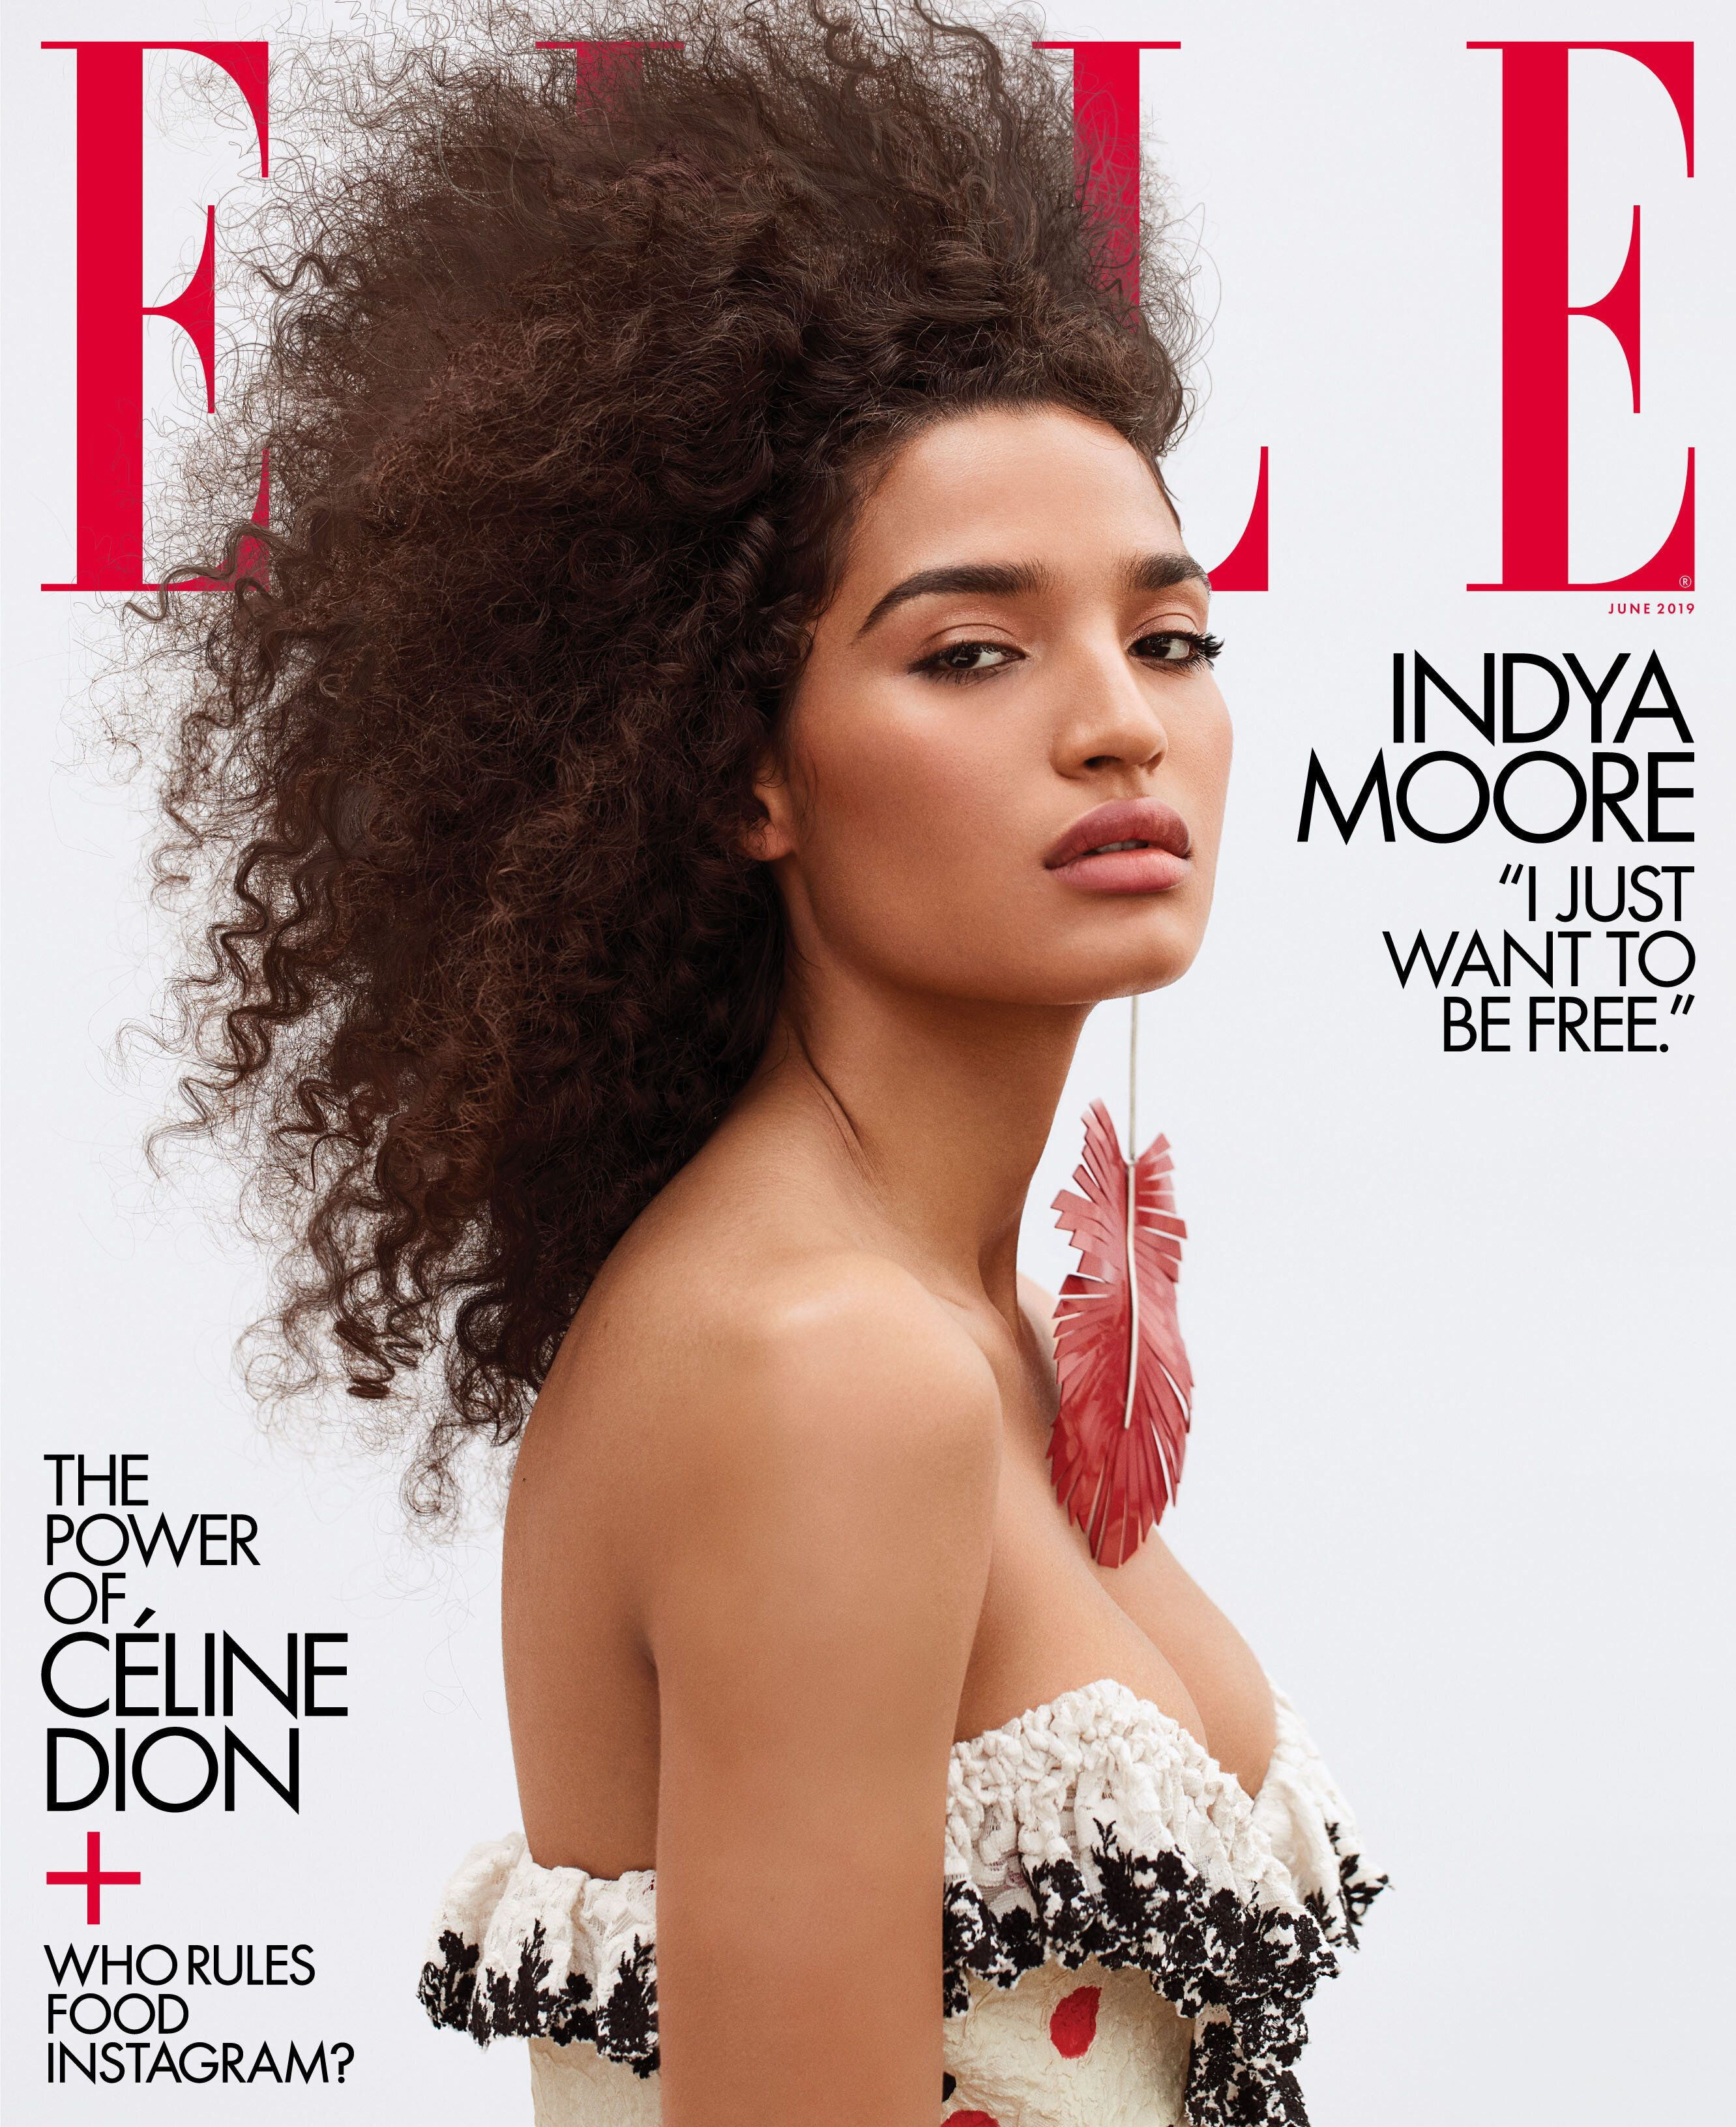 Indya Moore Looks Like An 'Angel' As Elle's First Transgender Cover